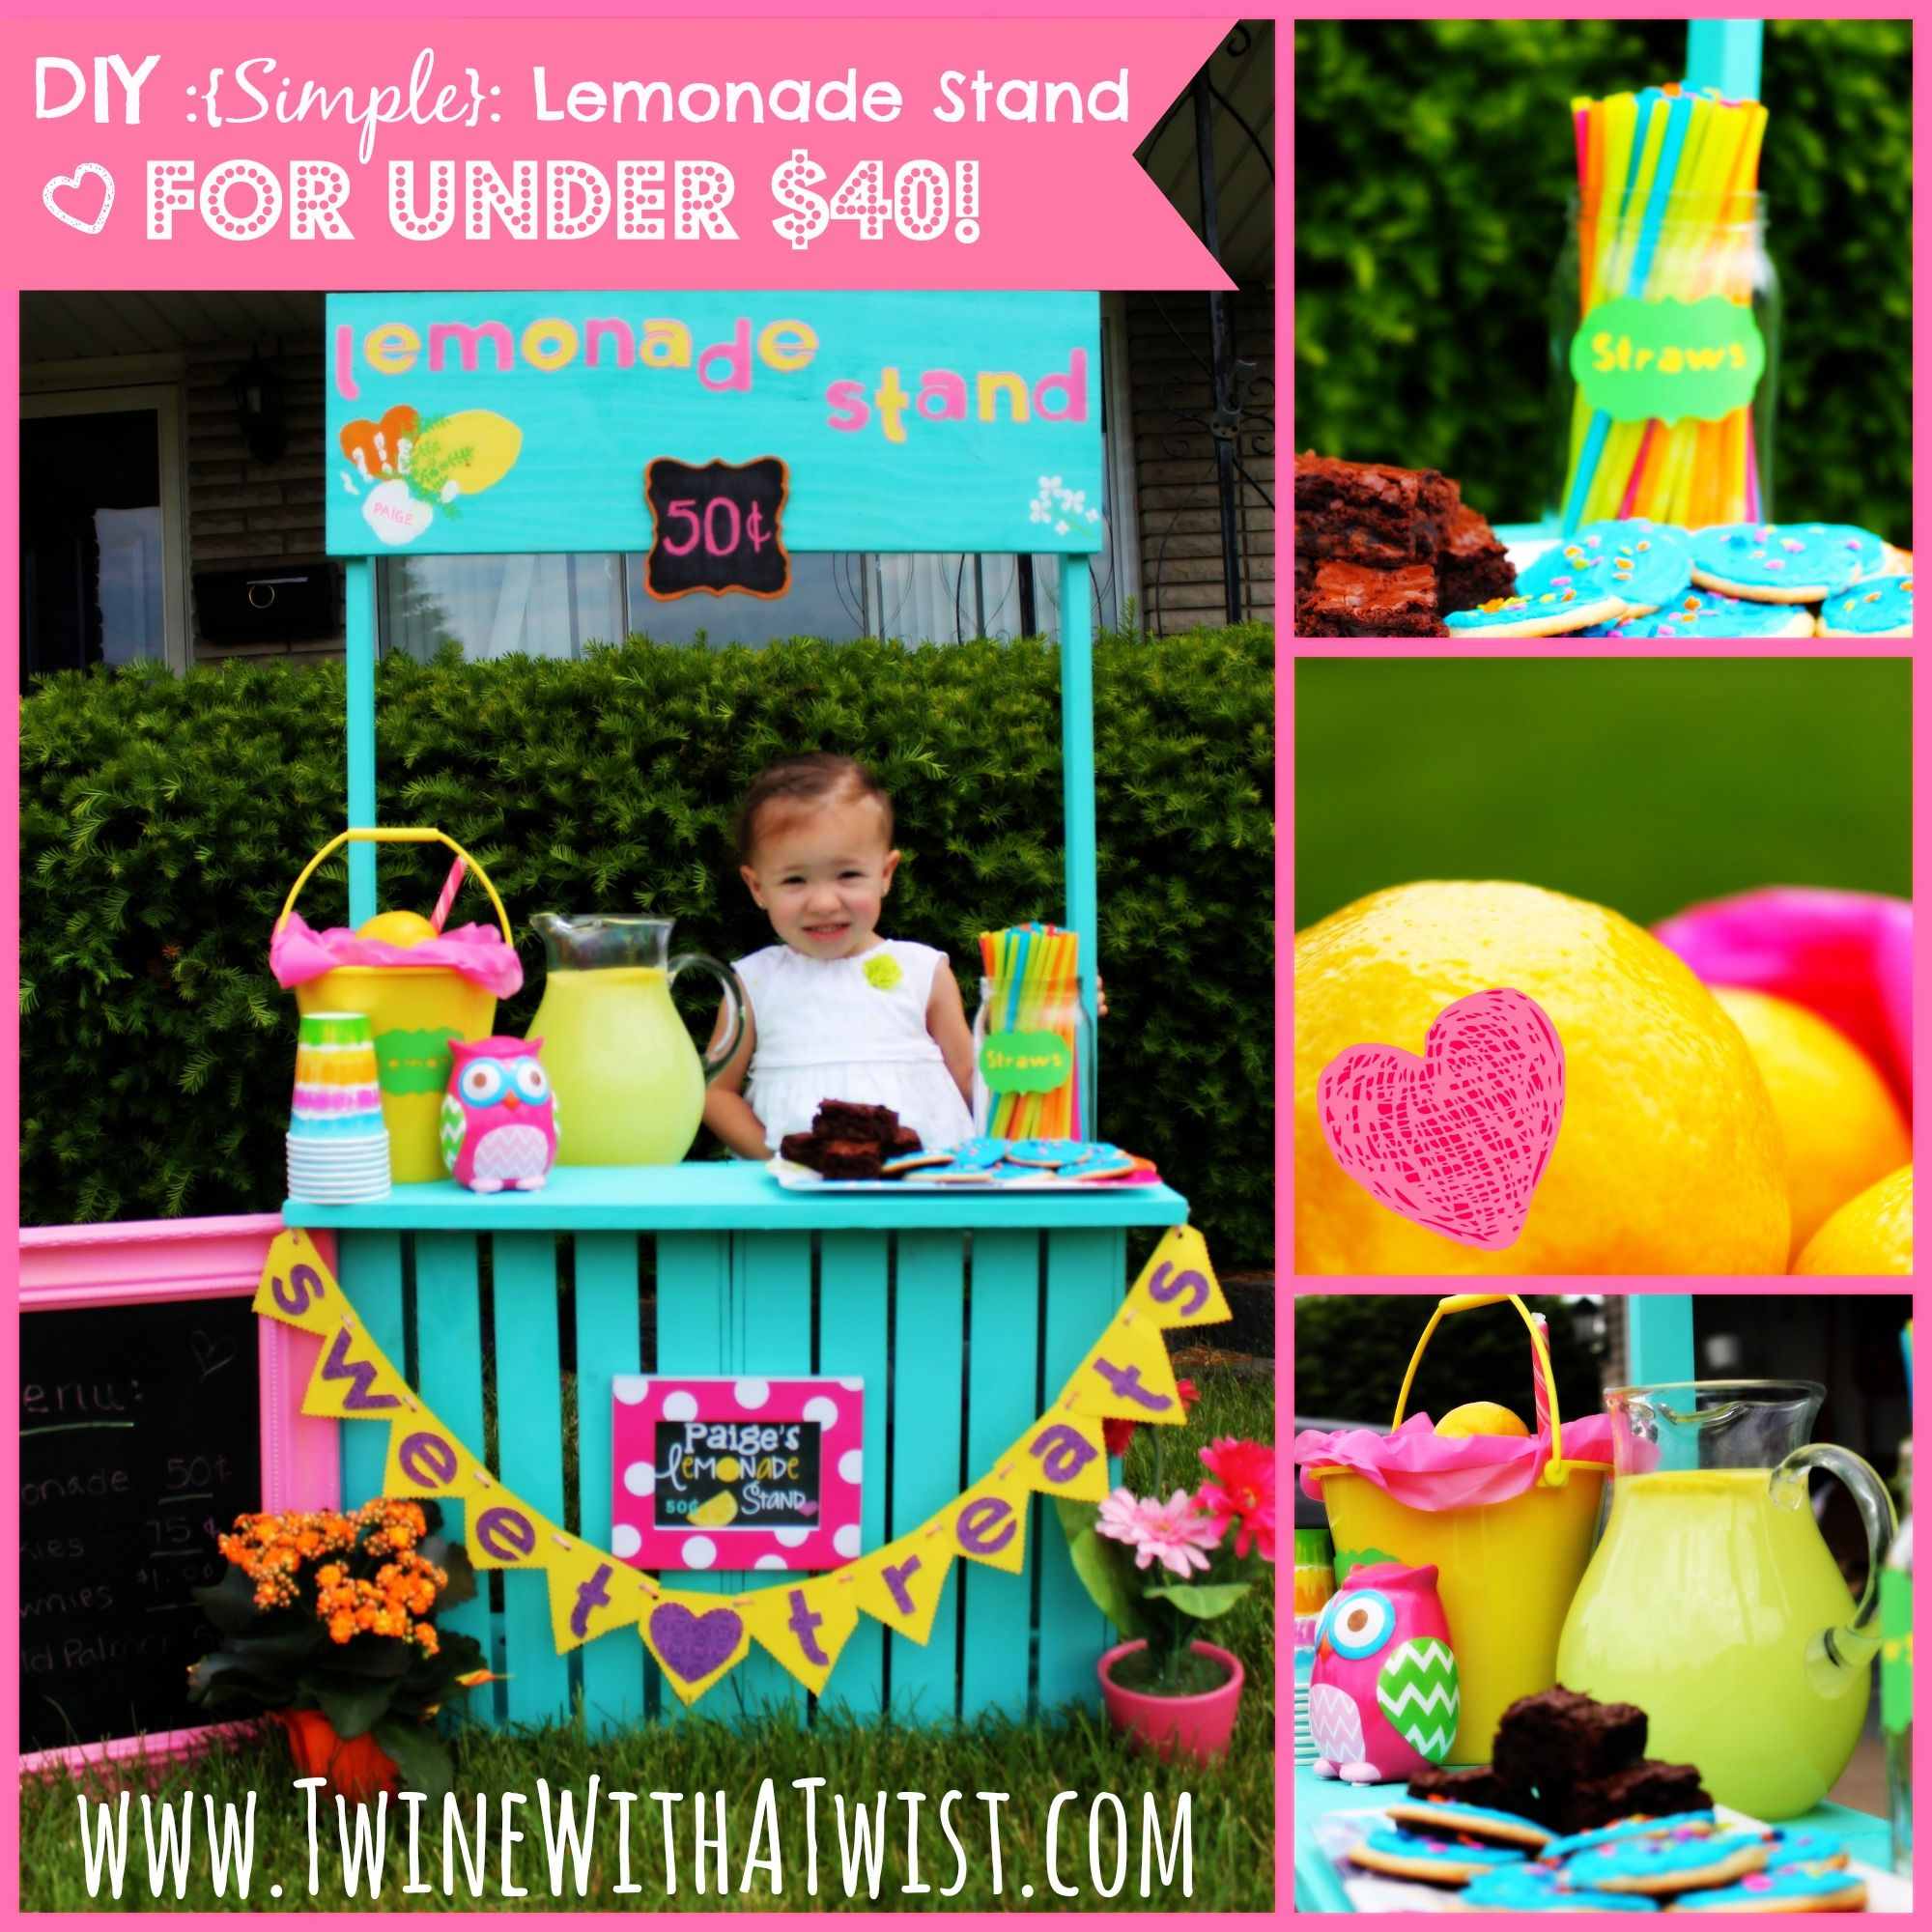 DIY: {Simple} Lemonade Stand under $40 {Guest Post} (Southern Beauty ...